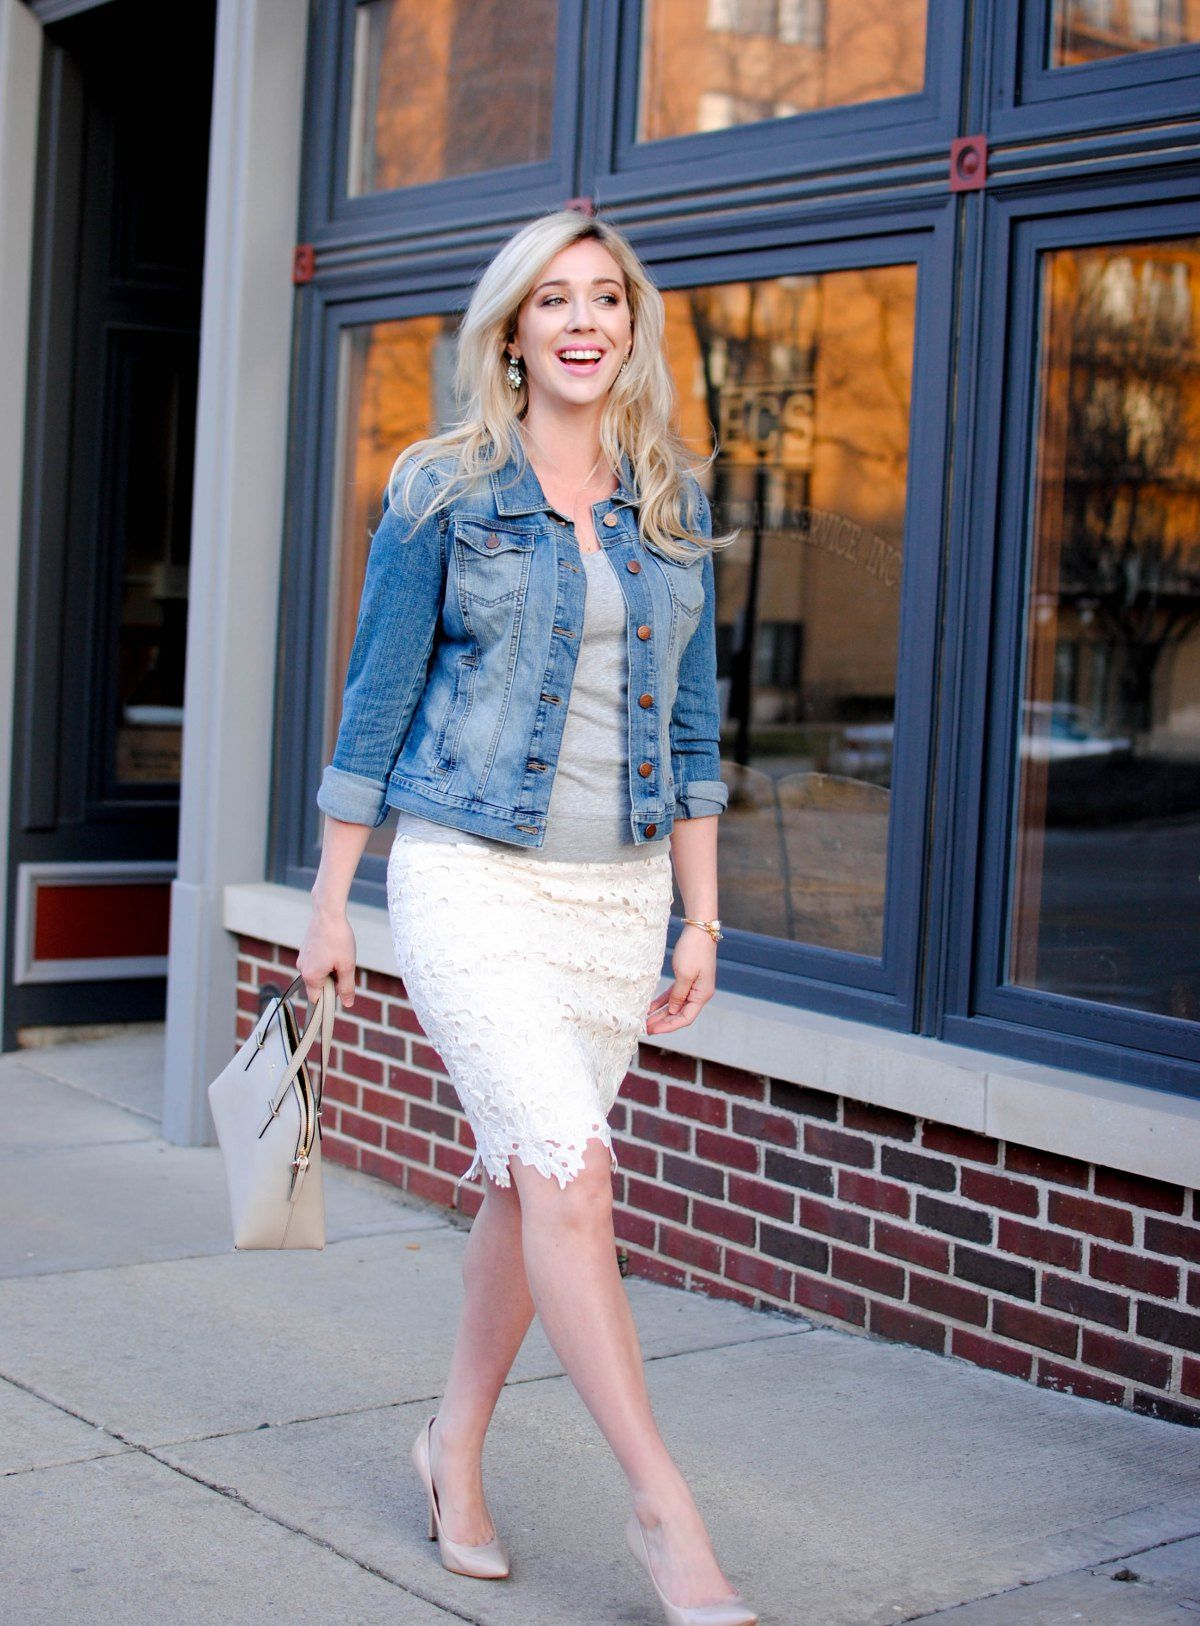 How to straight wear jeans with booties, Waisted high floral skirt